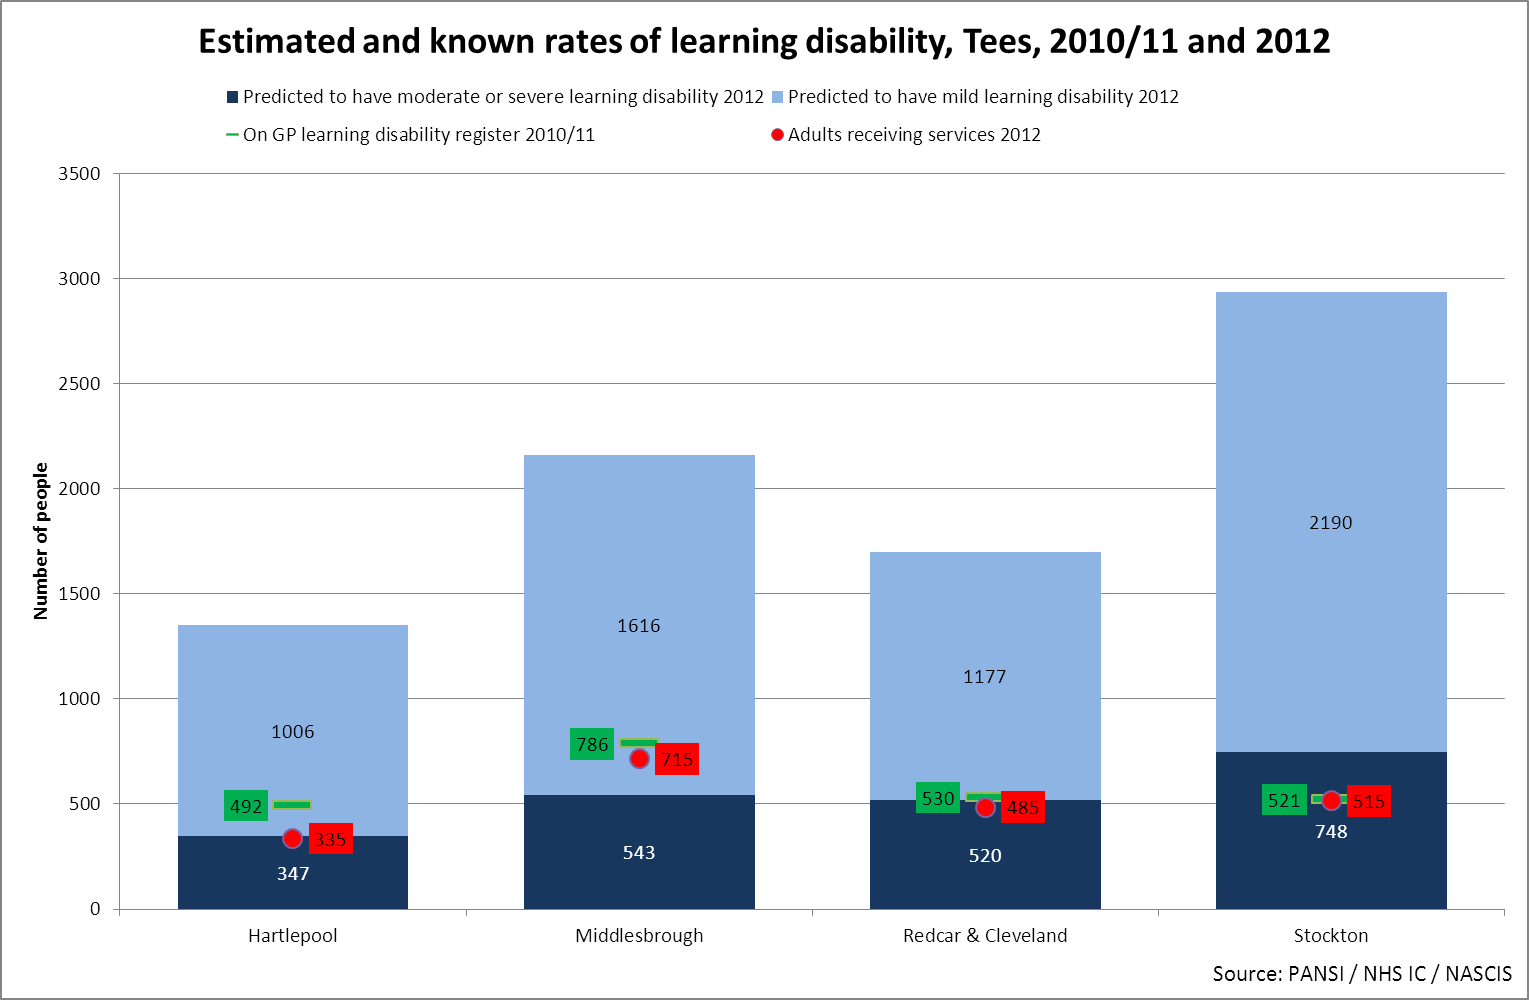 Estimated and know rates of learning disability, Tees, 2010/11 and 2012